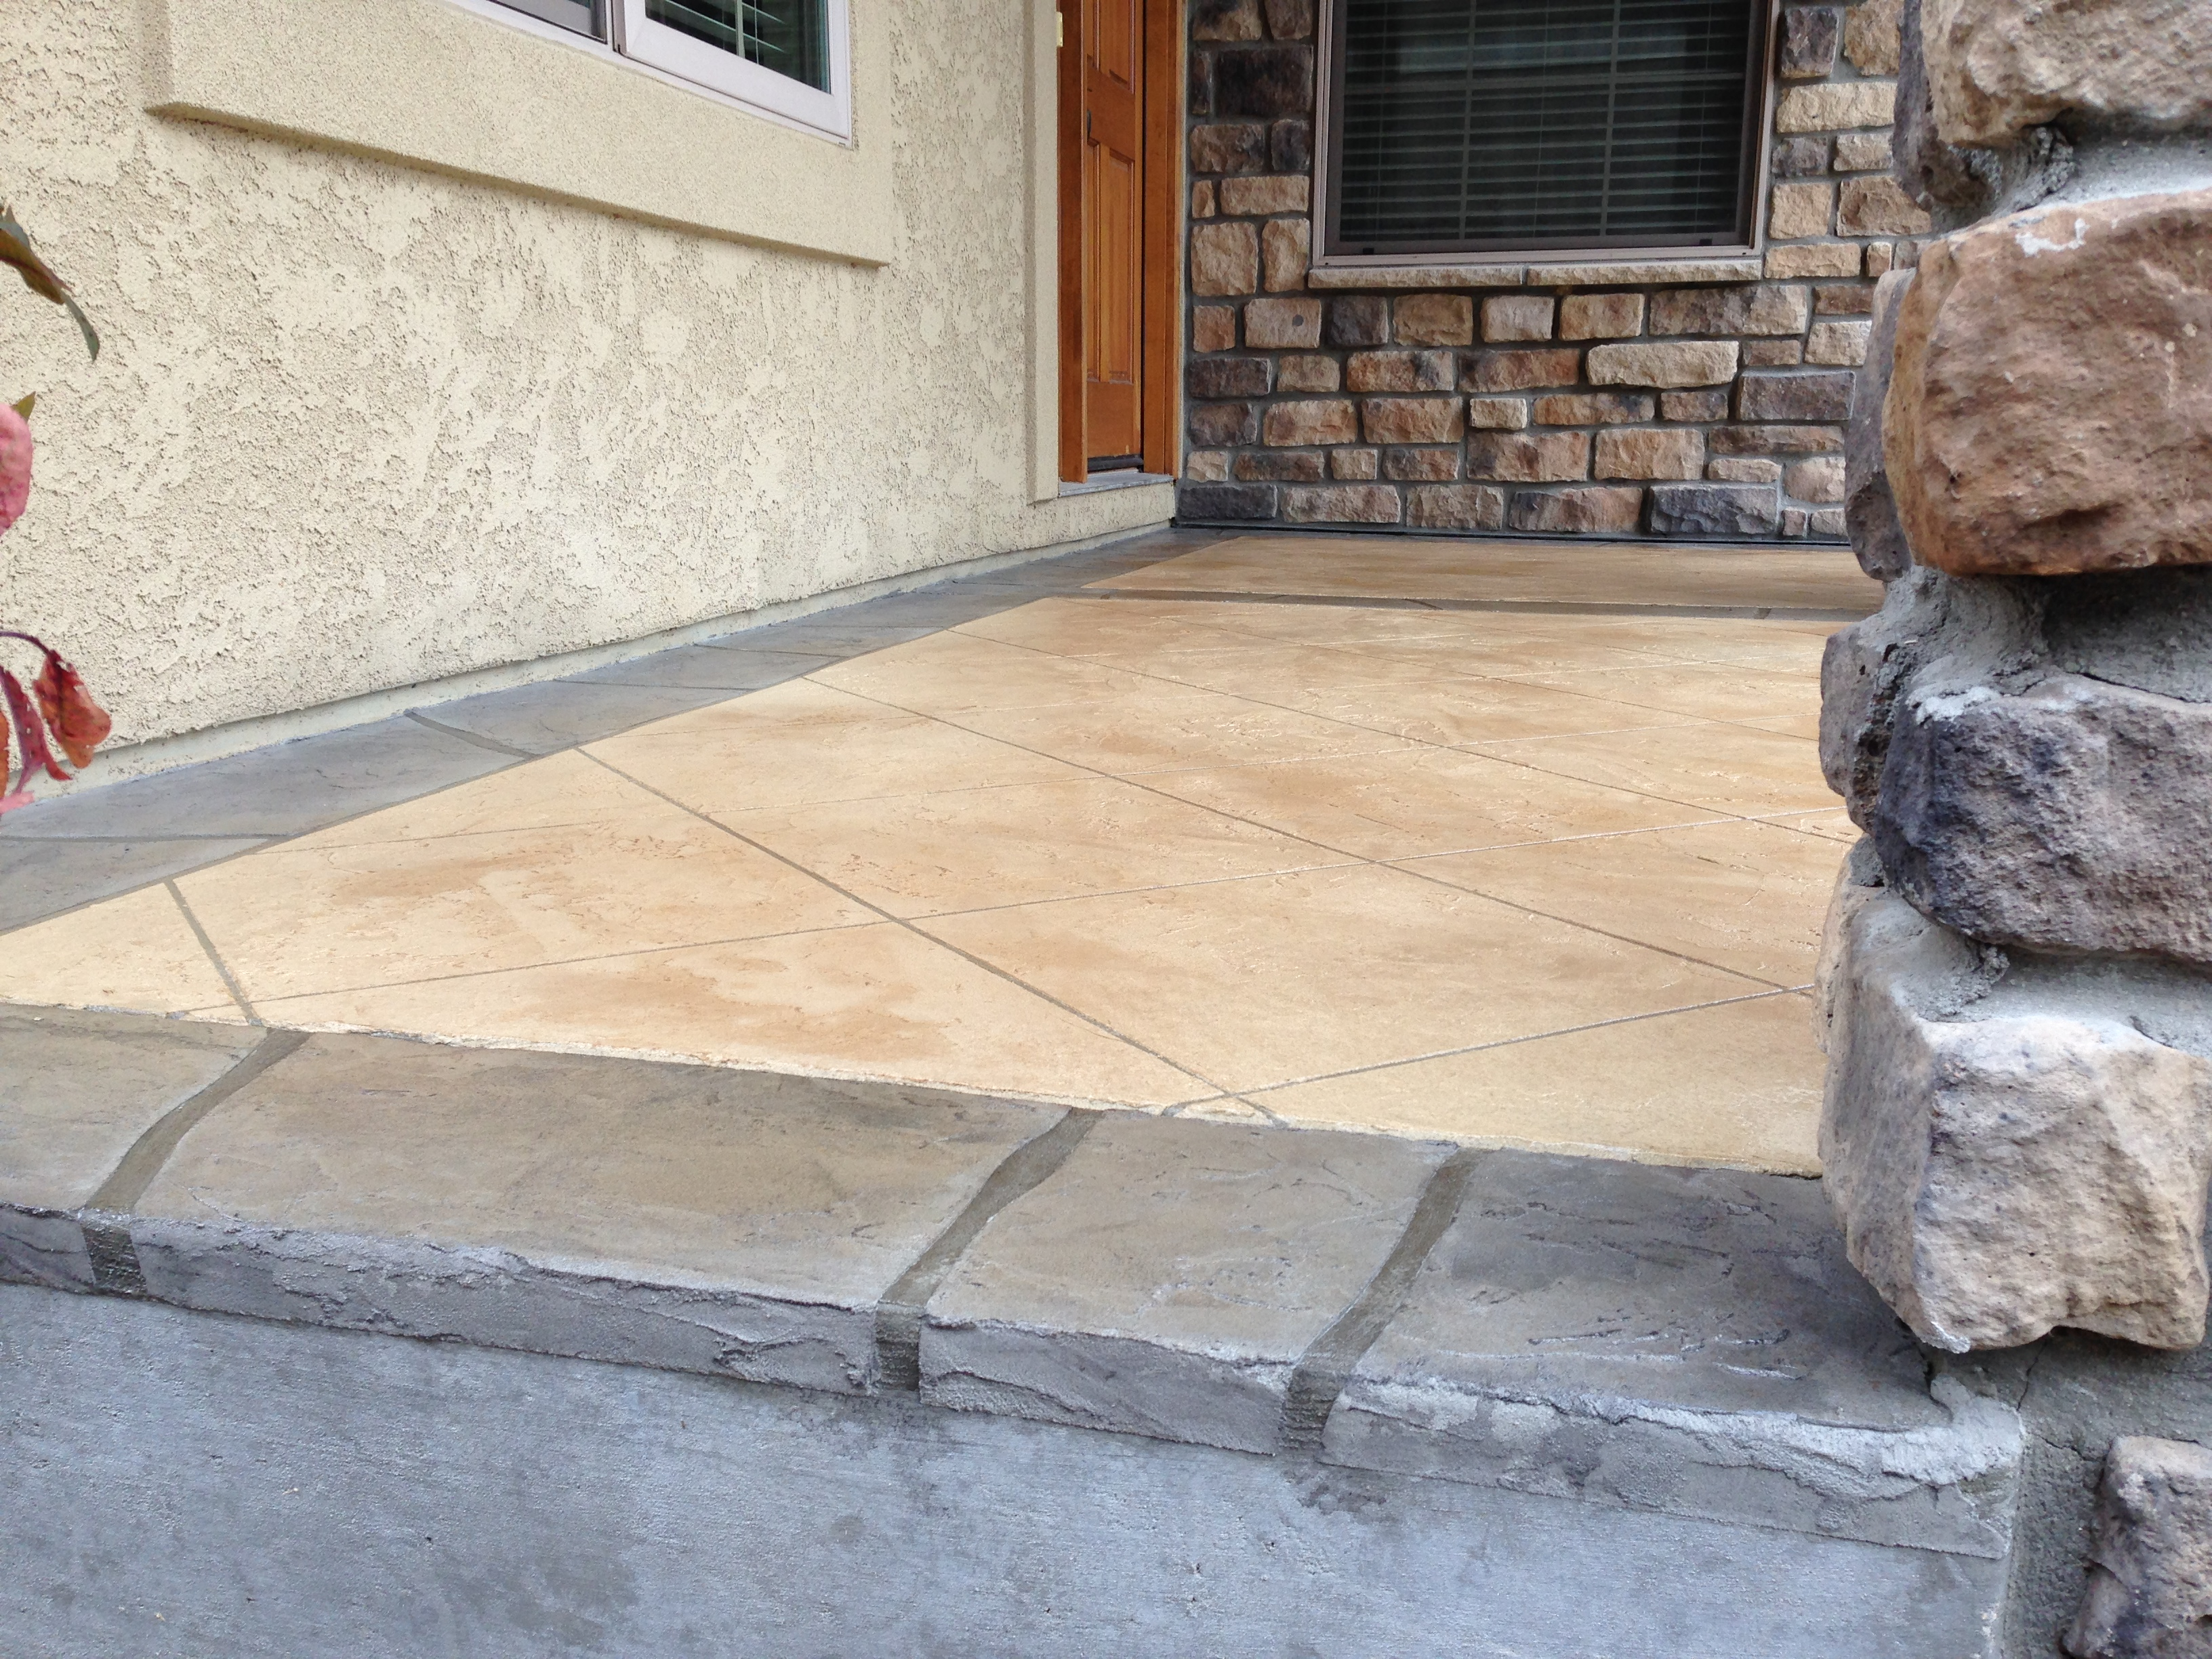 decorative concrete coating overlay